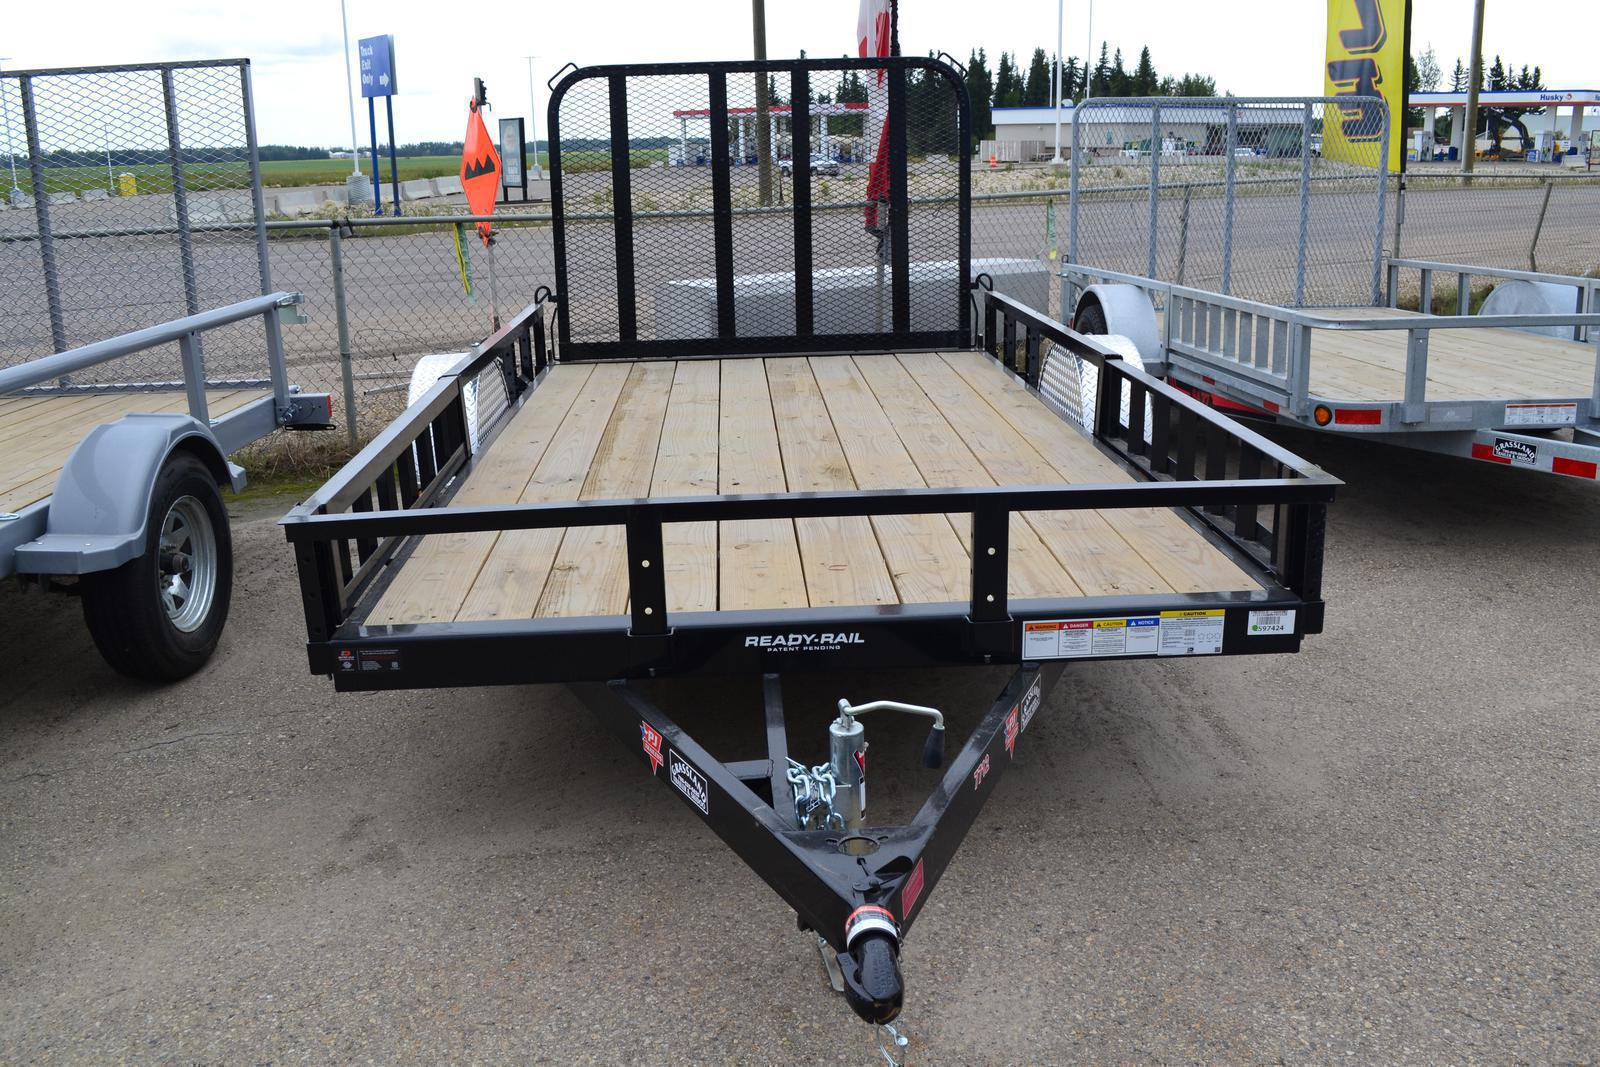 Inventory from PJ TRAILERS and SWS GTS Powersports & RV